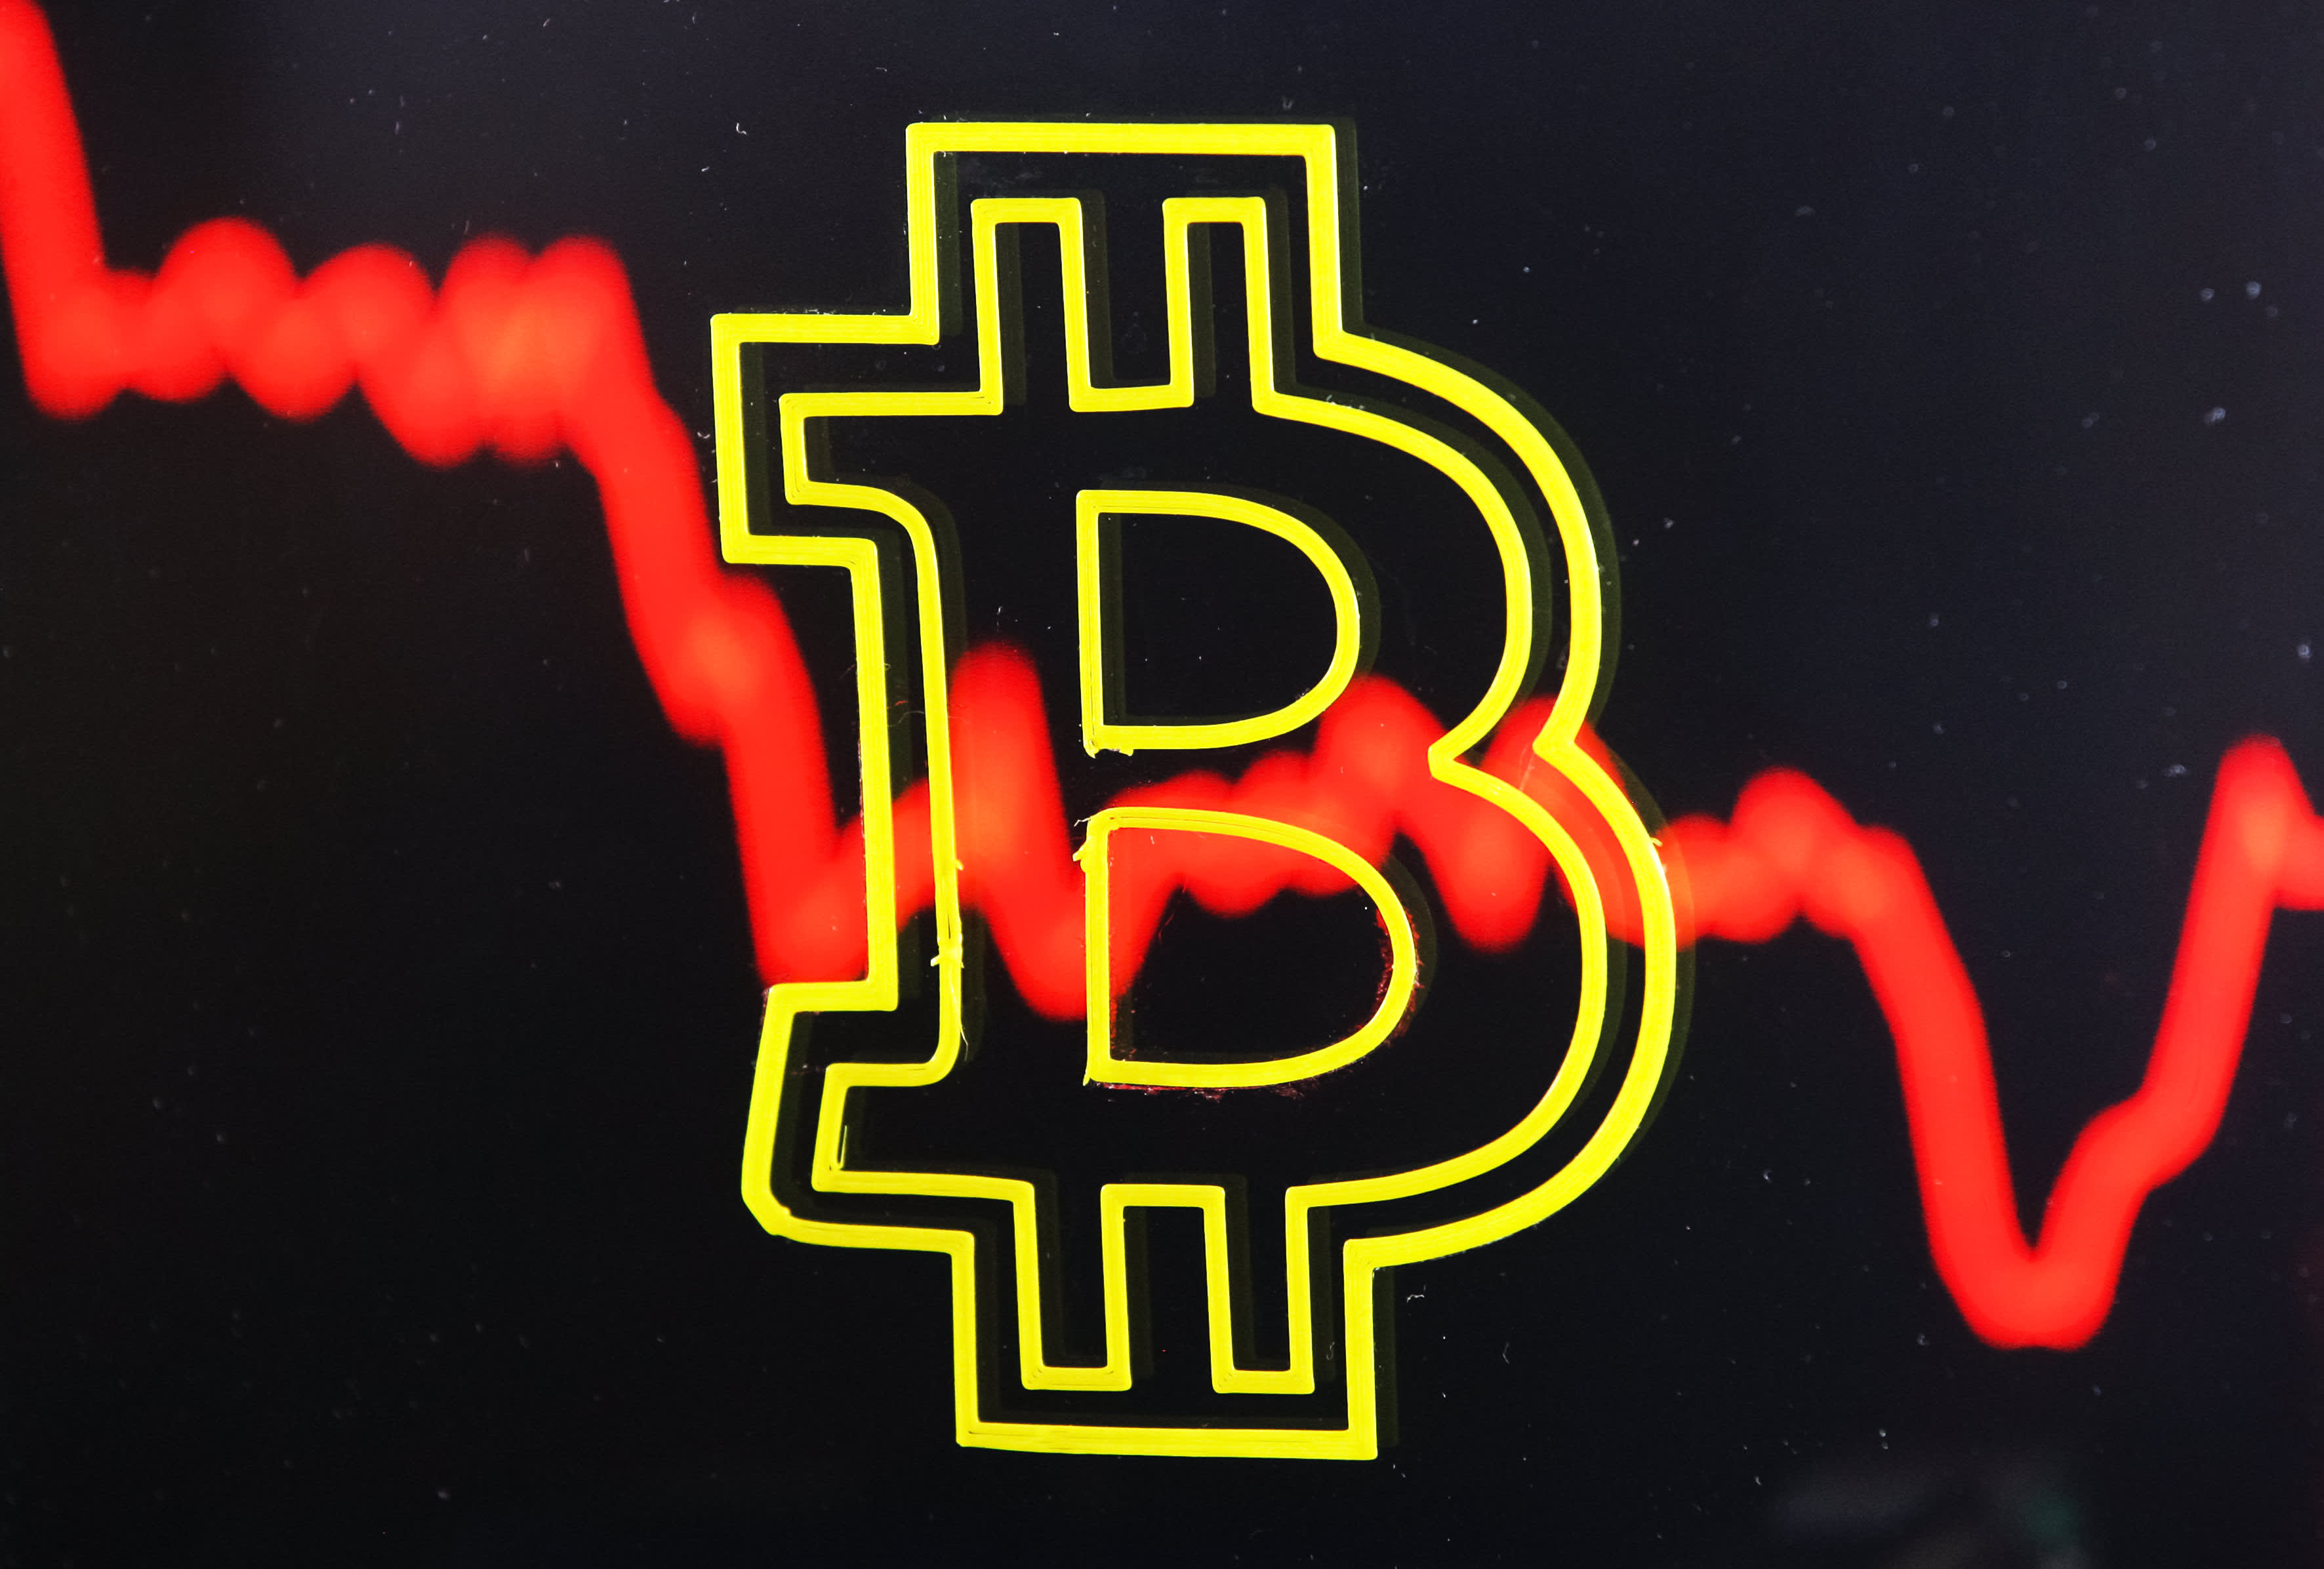 Bitcoin extends gains, climbing above $31,000 as cryptocurrencies rebound from sell-off